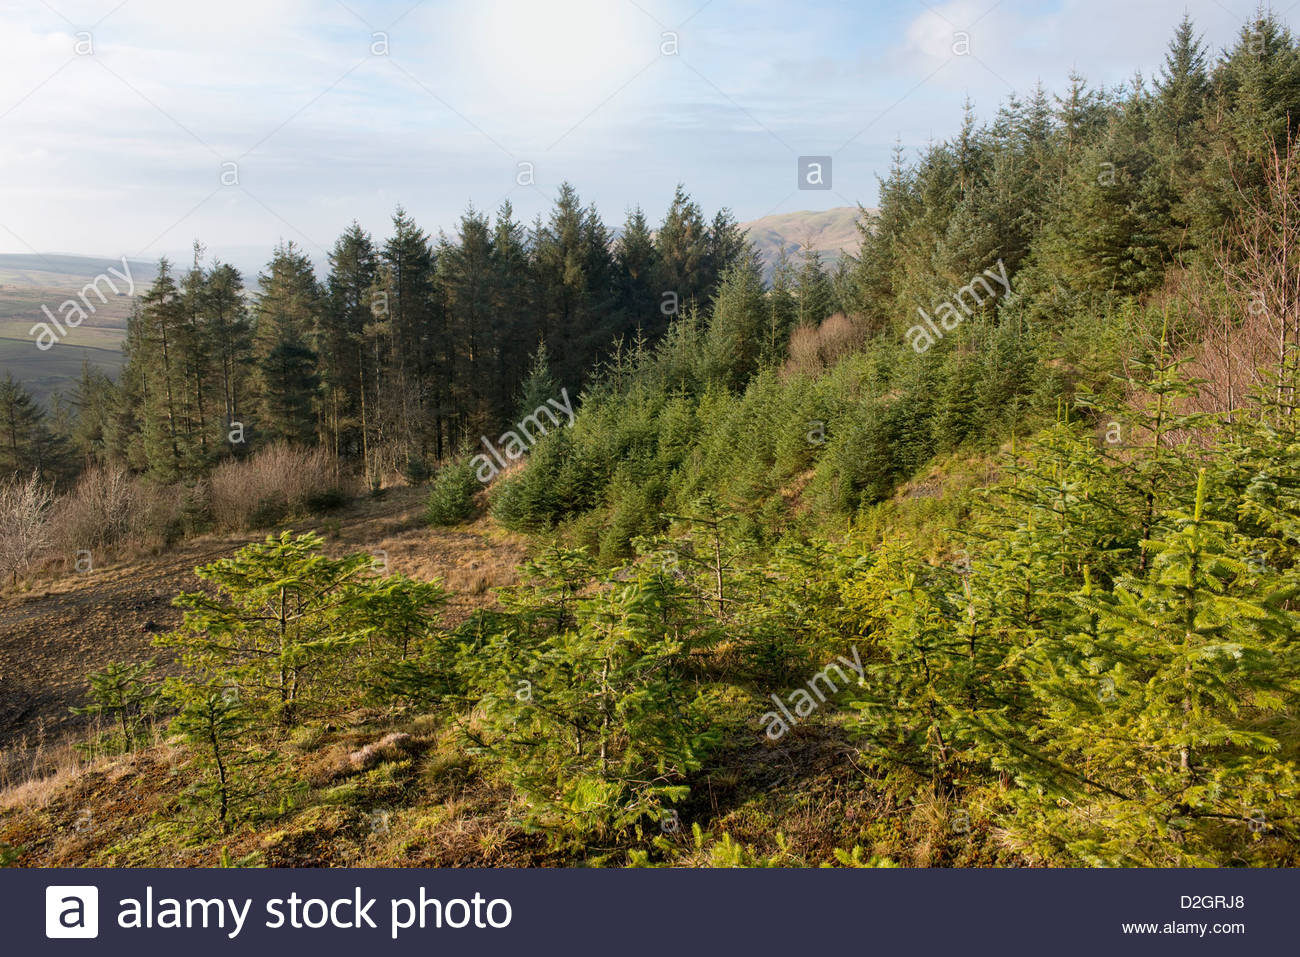 Commercial forest in South Ayrshire, Scotland showing saplings through to mature trees - Stock Image